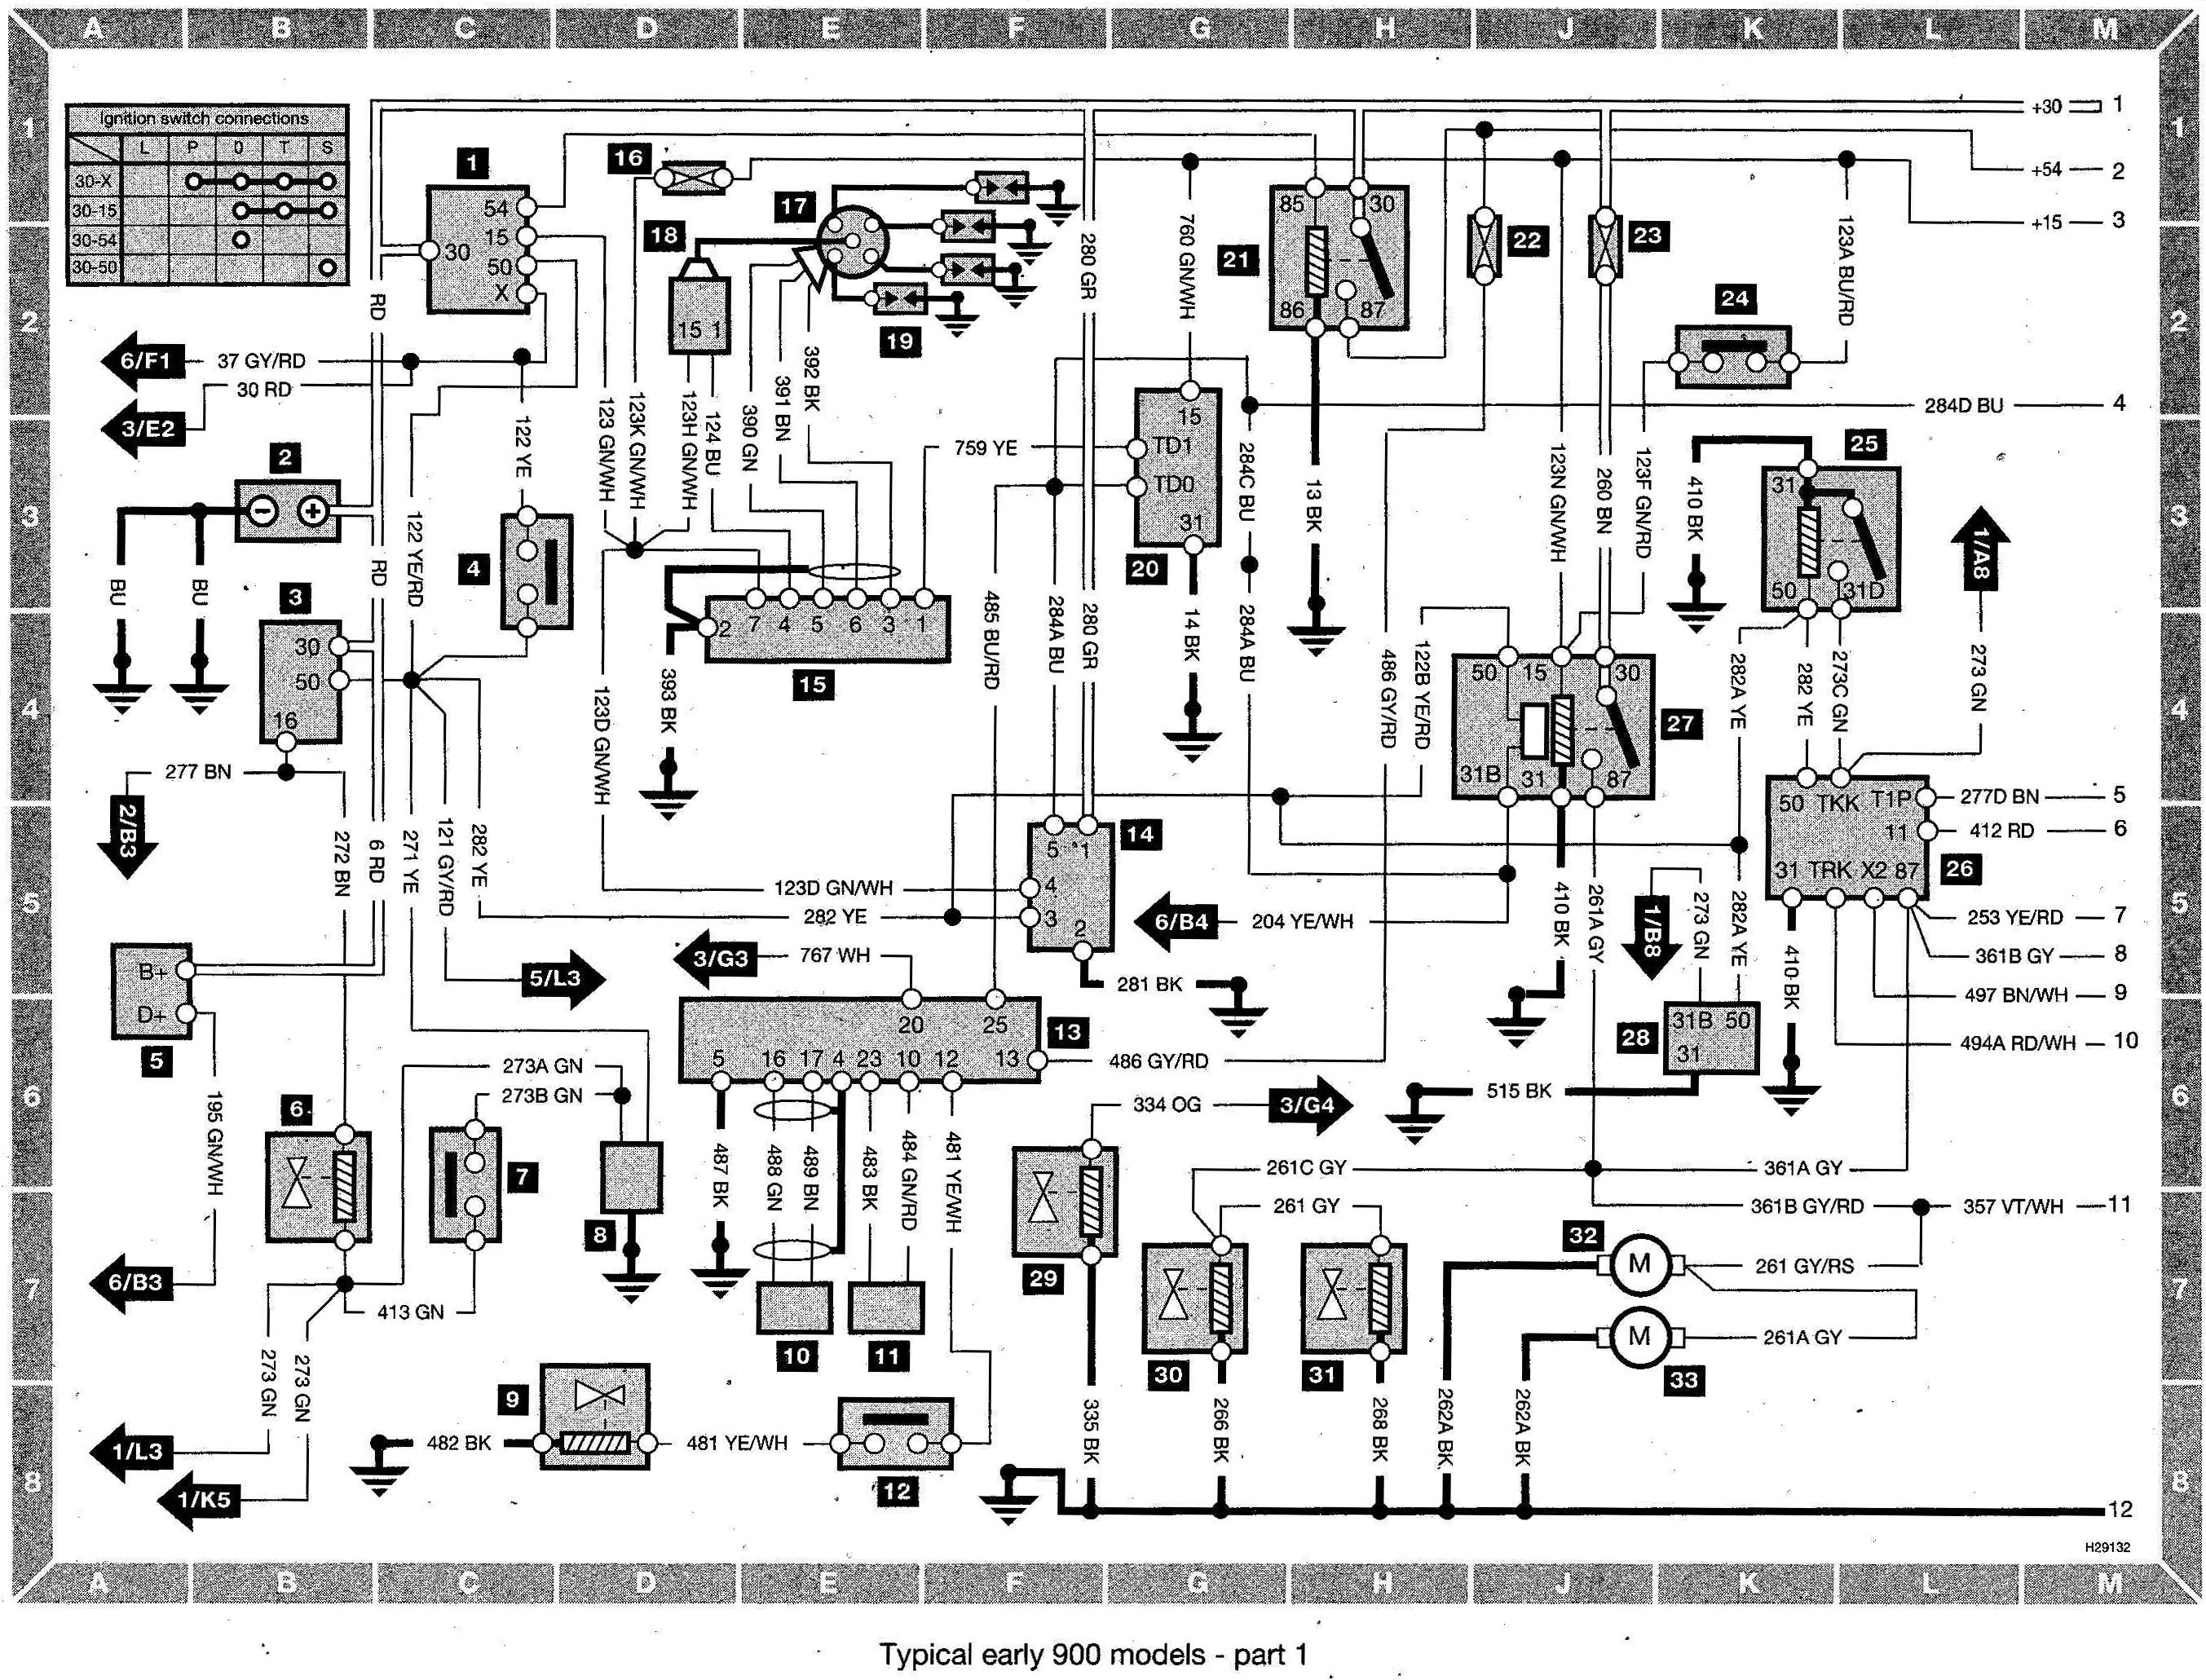 2000 saab 9 3 radio wire diagram